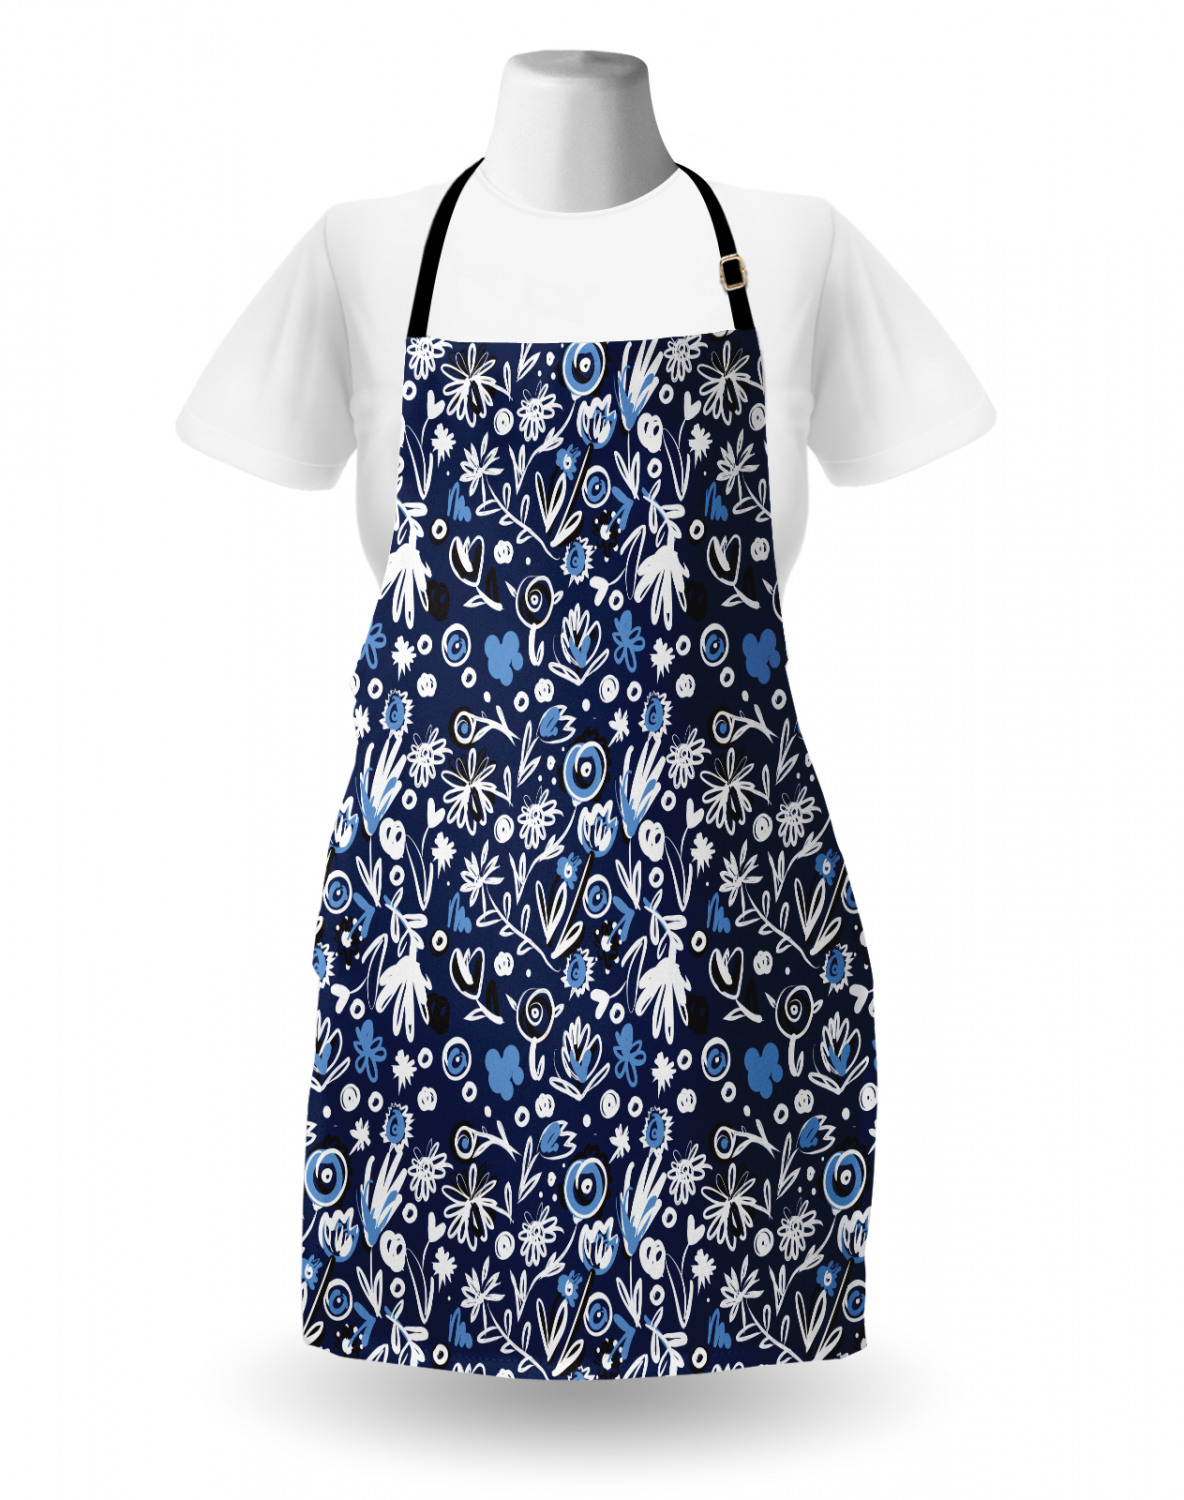 Ambesonne-Outdoor-Use-Apron-with-Adjustable-Neck-Strap-for-Gardening-and-Cooking miniatura 152